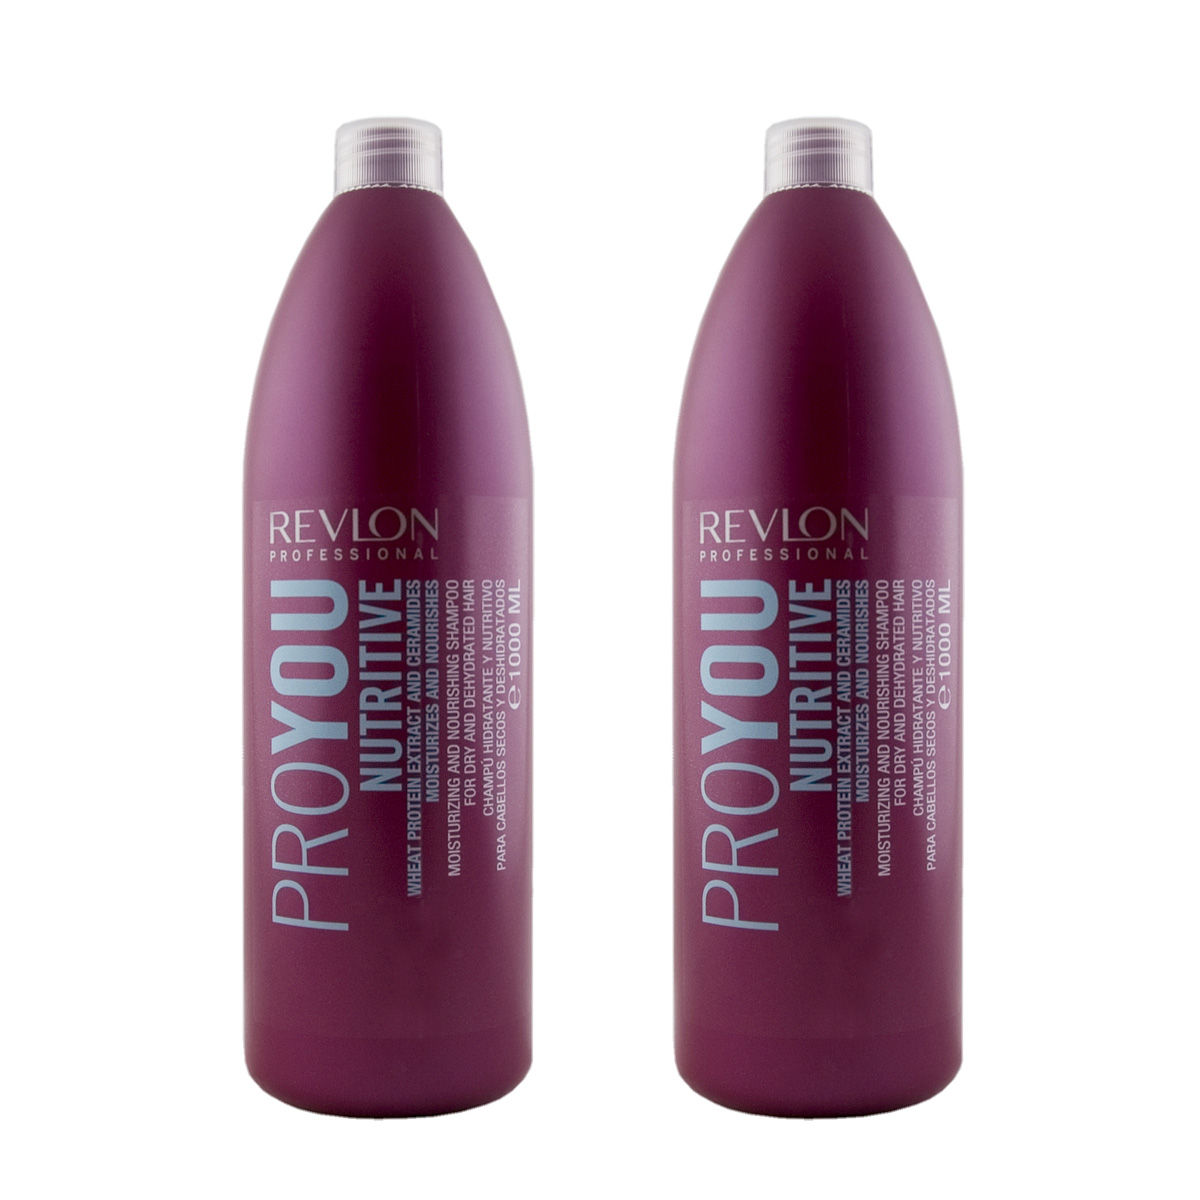 Revlon Professional Pro You Hydro-Nutritive Shampoo 2 x 1000 ml